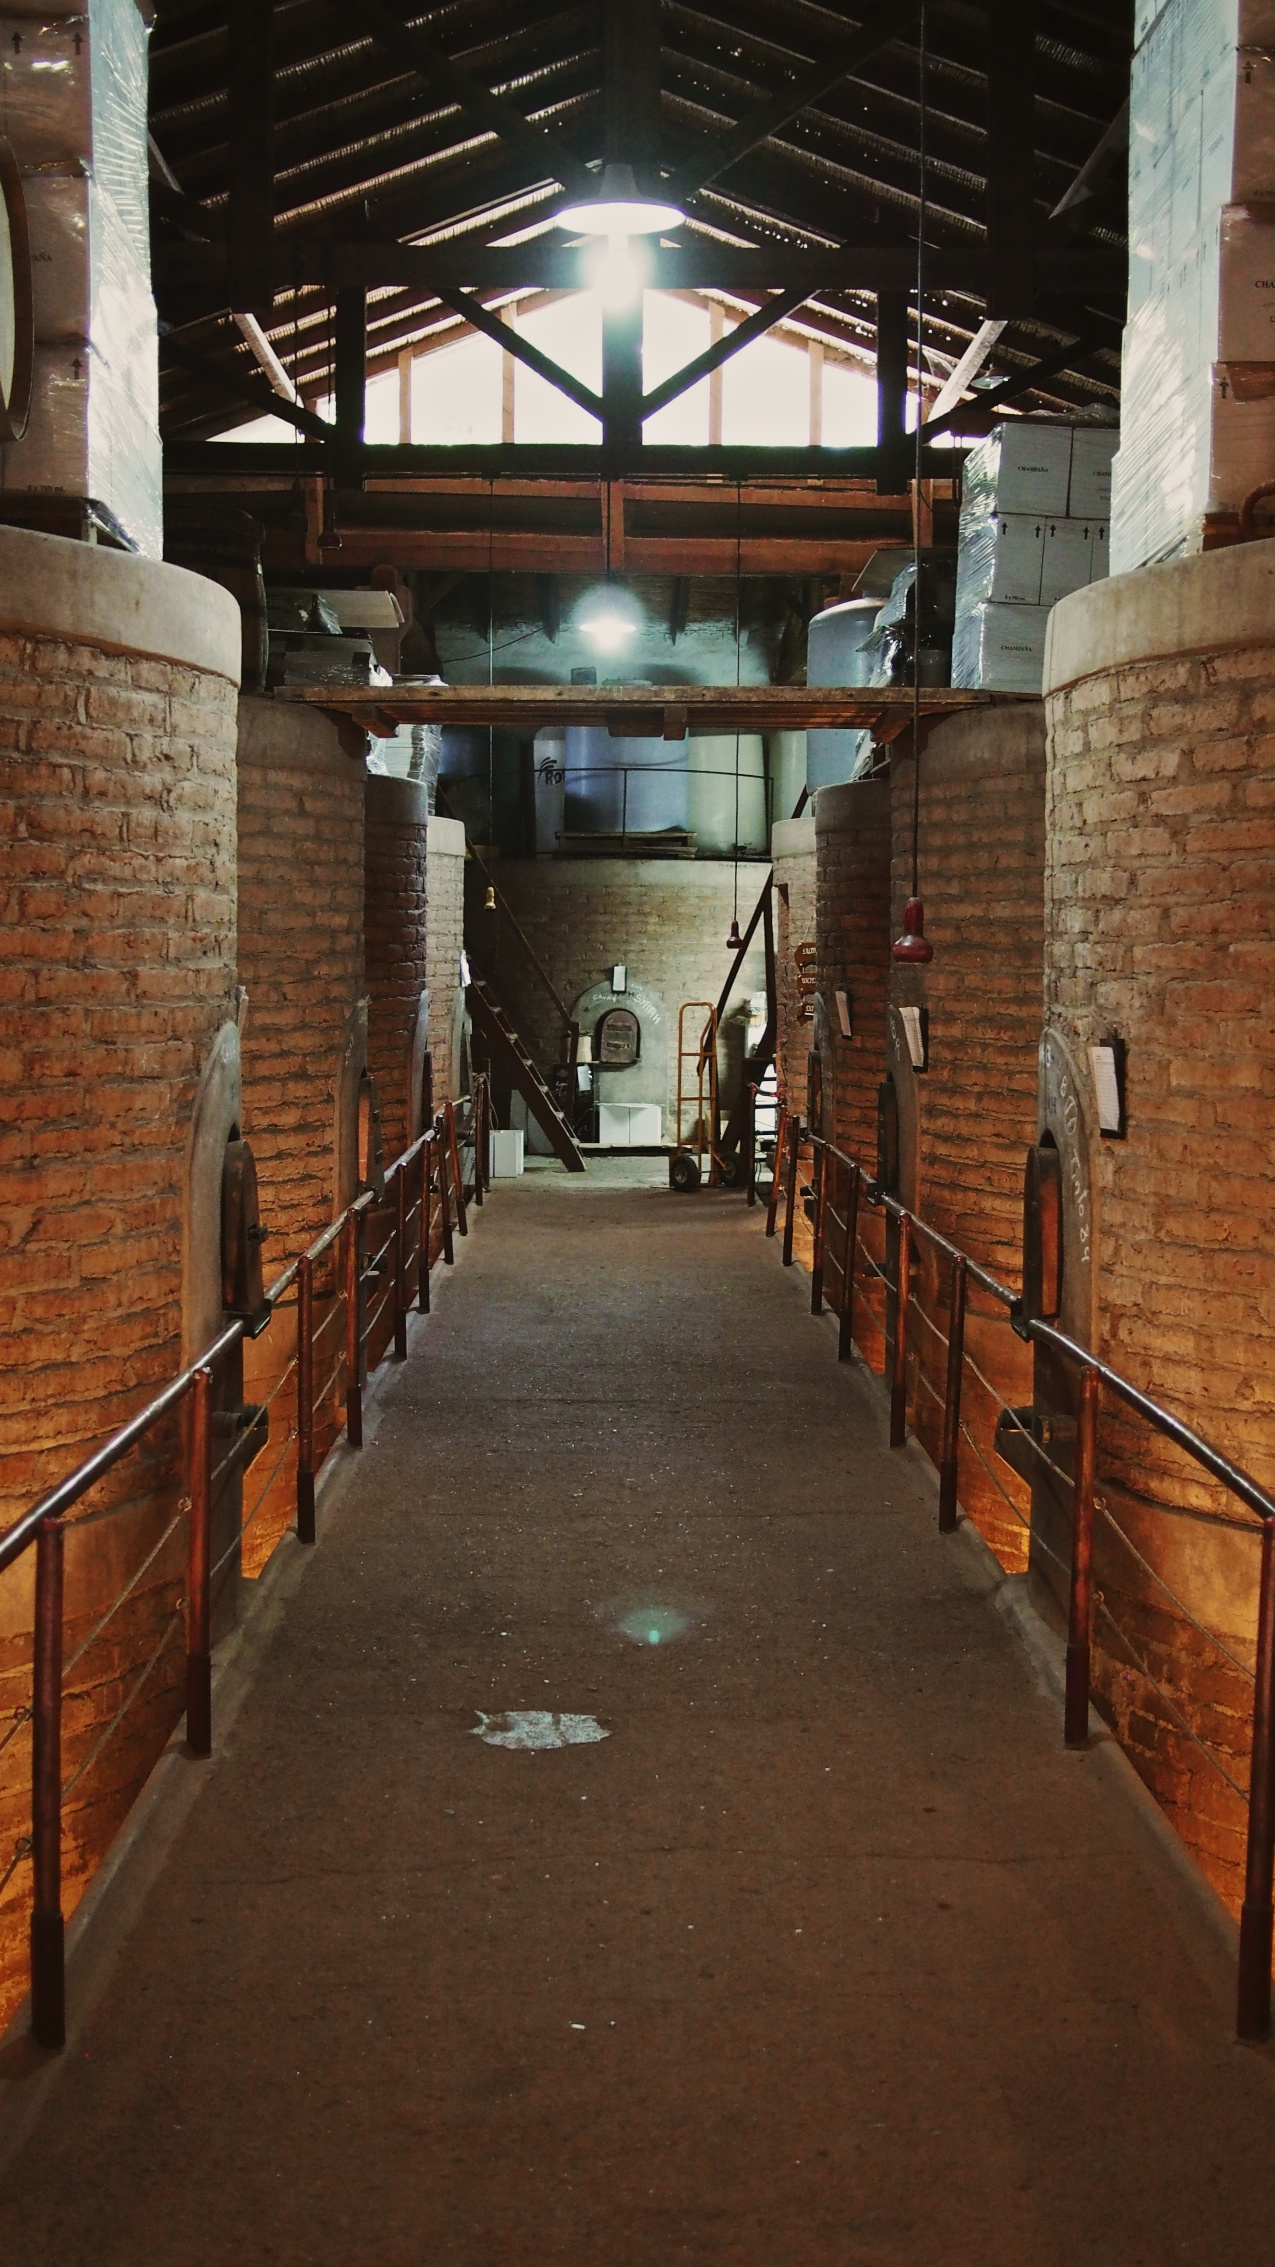 Though no longer in use, the original fermentation facilities remian intact